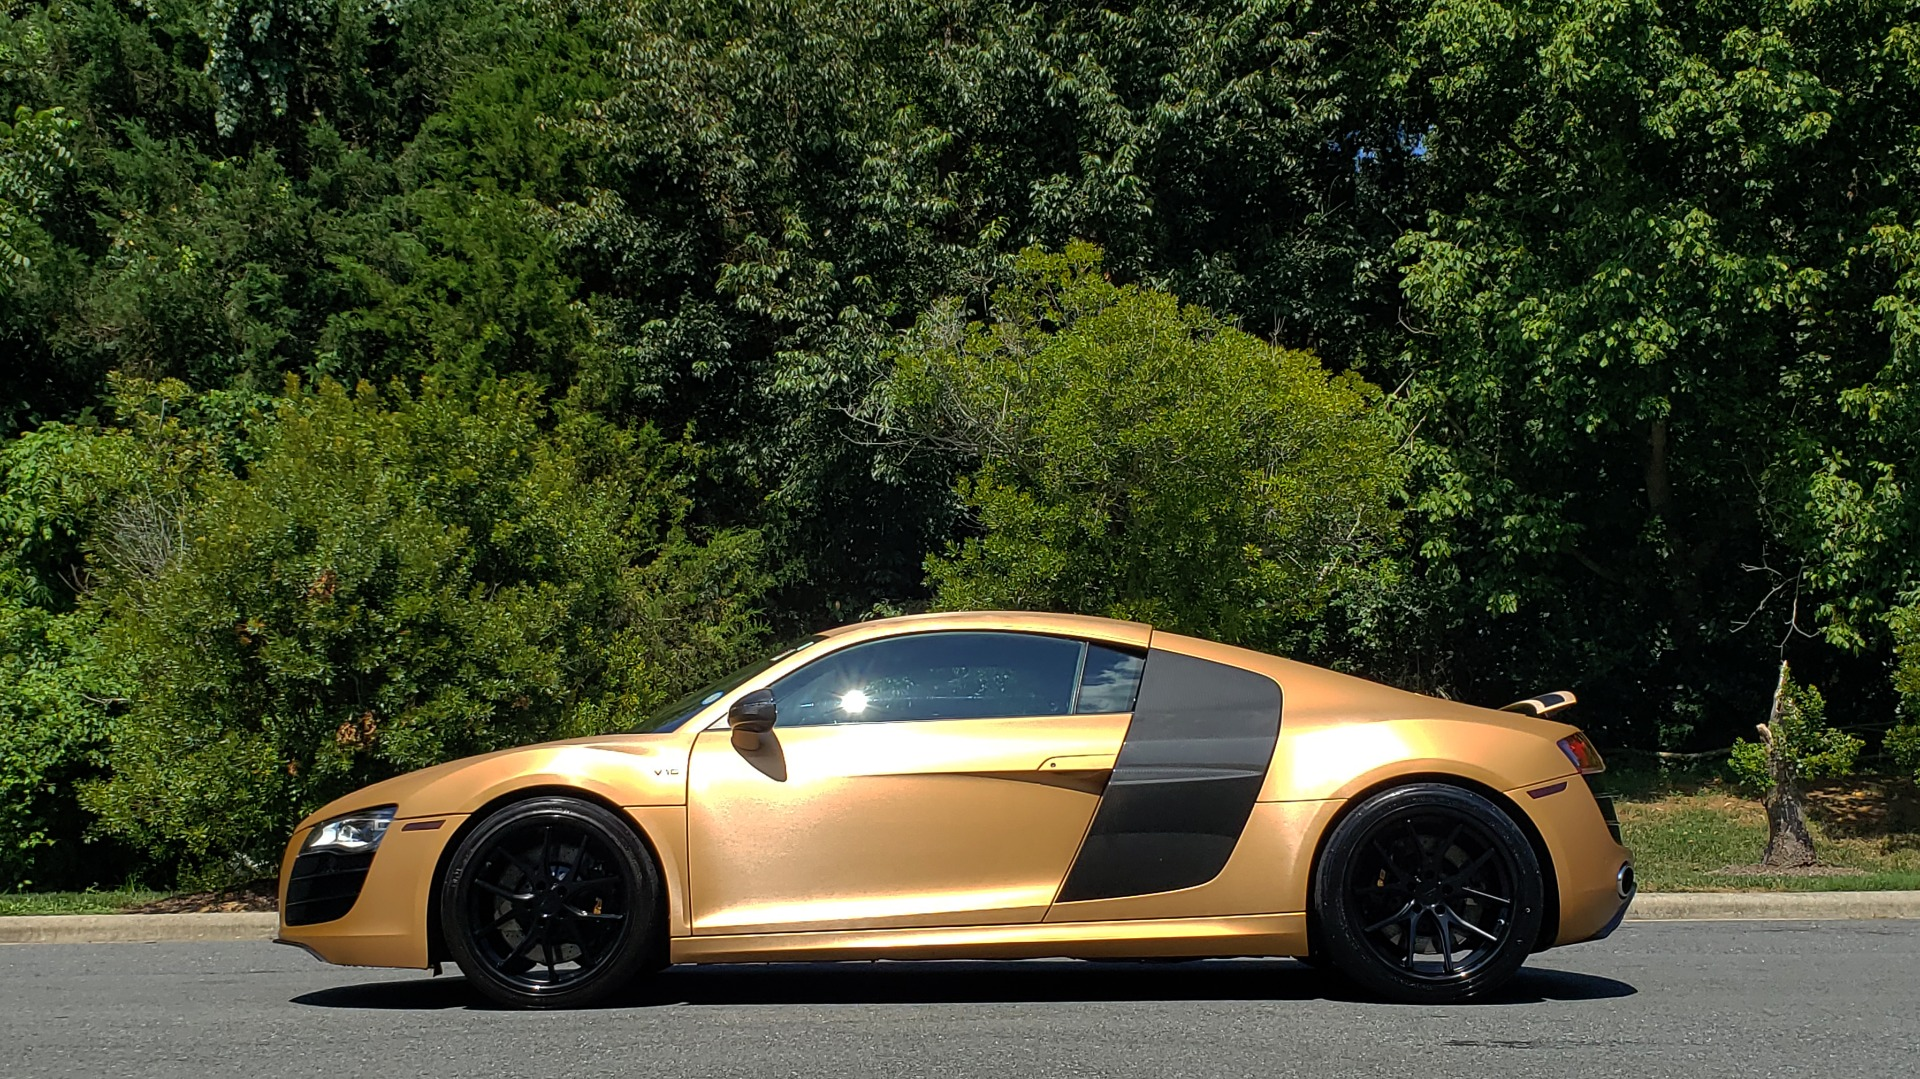 Used 2012 Audi R8 5.2L V10 / AWD / COUPE / NAV / 6-SPD AUTO / CUSTOM WRAP for sale Sold at Formula Imports in Charlotte NC 28227 4